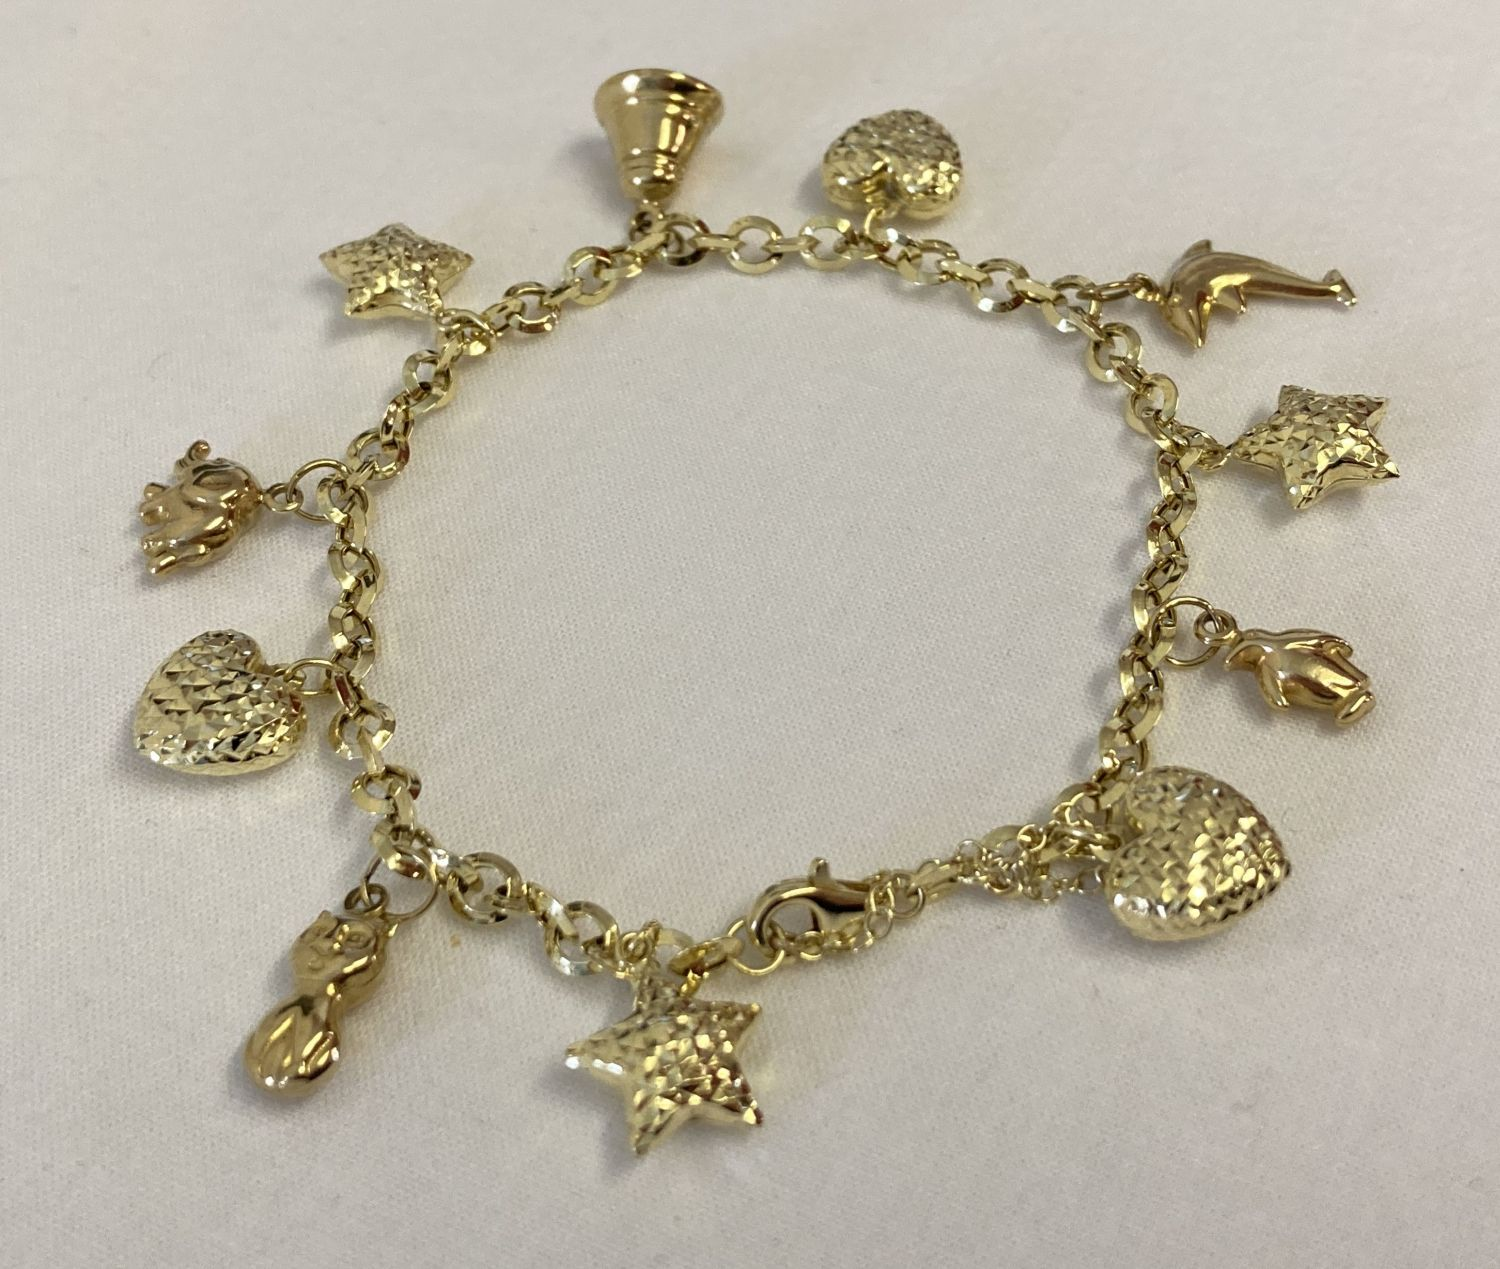 A modern 9ct gold charm bracelet with fixed charms and safety chain.